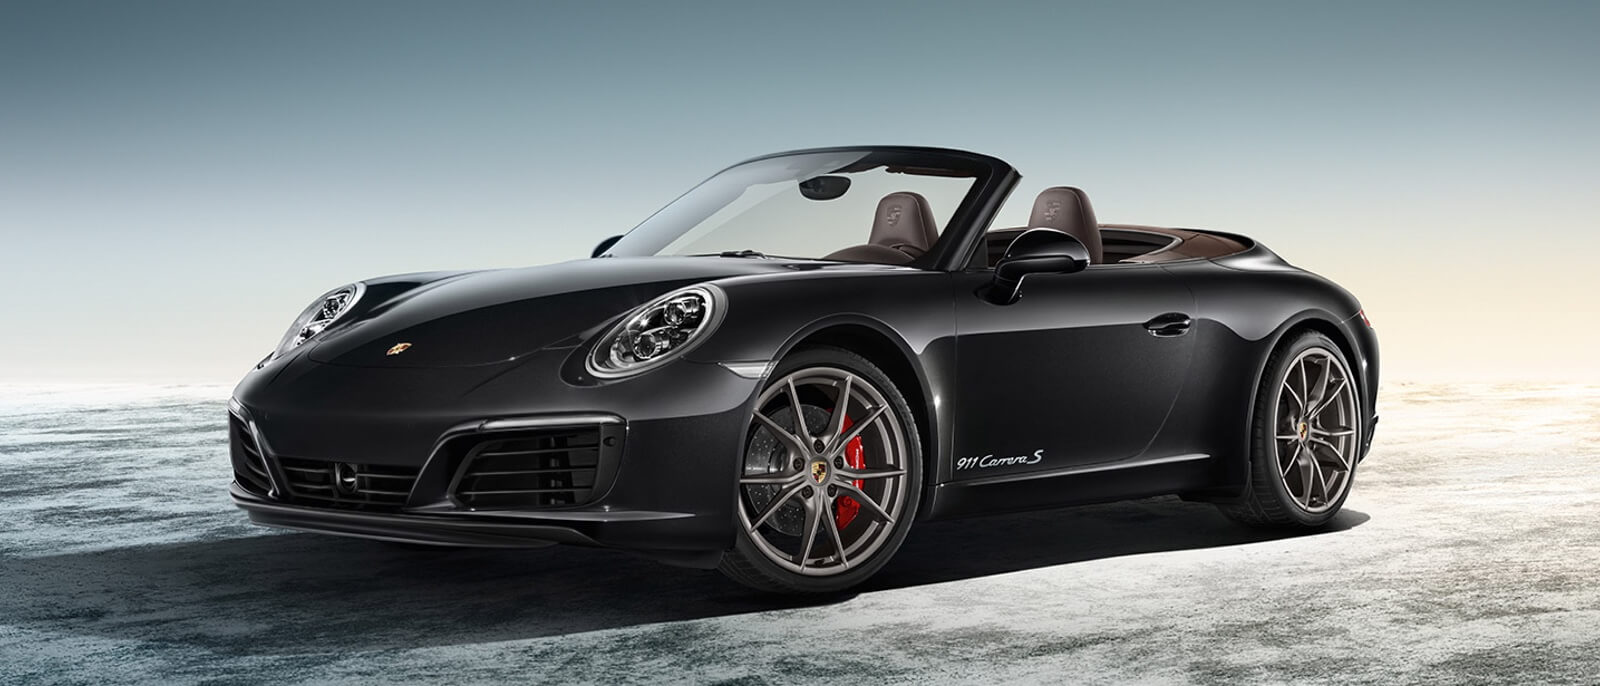 get twin turbo power with a 2017 porsche 911 carrera s cabriolet. Black Bedroom Furniture Sets. Home Design Ideas